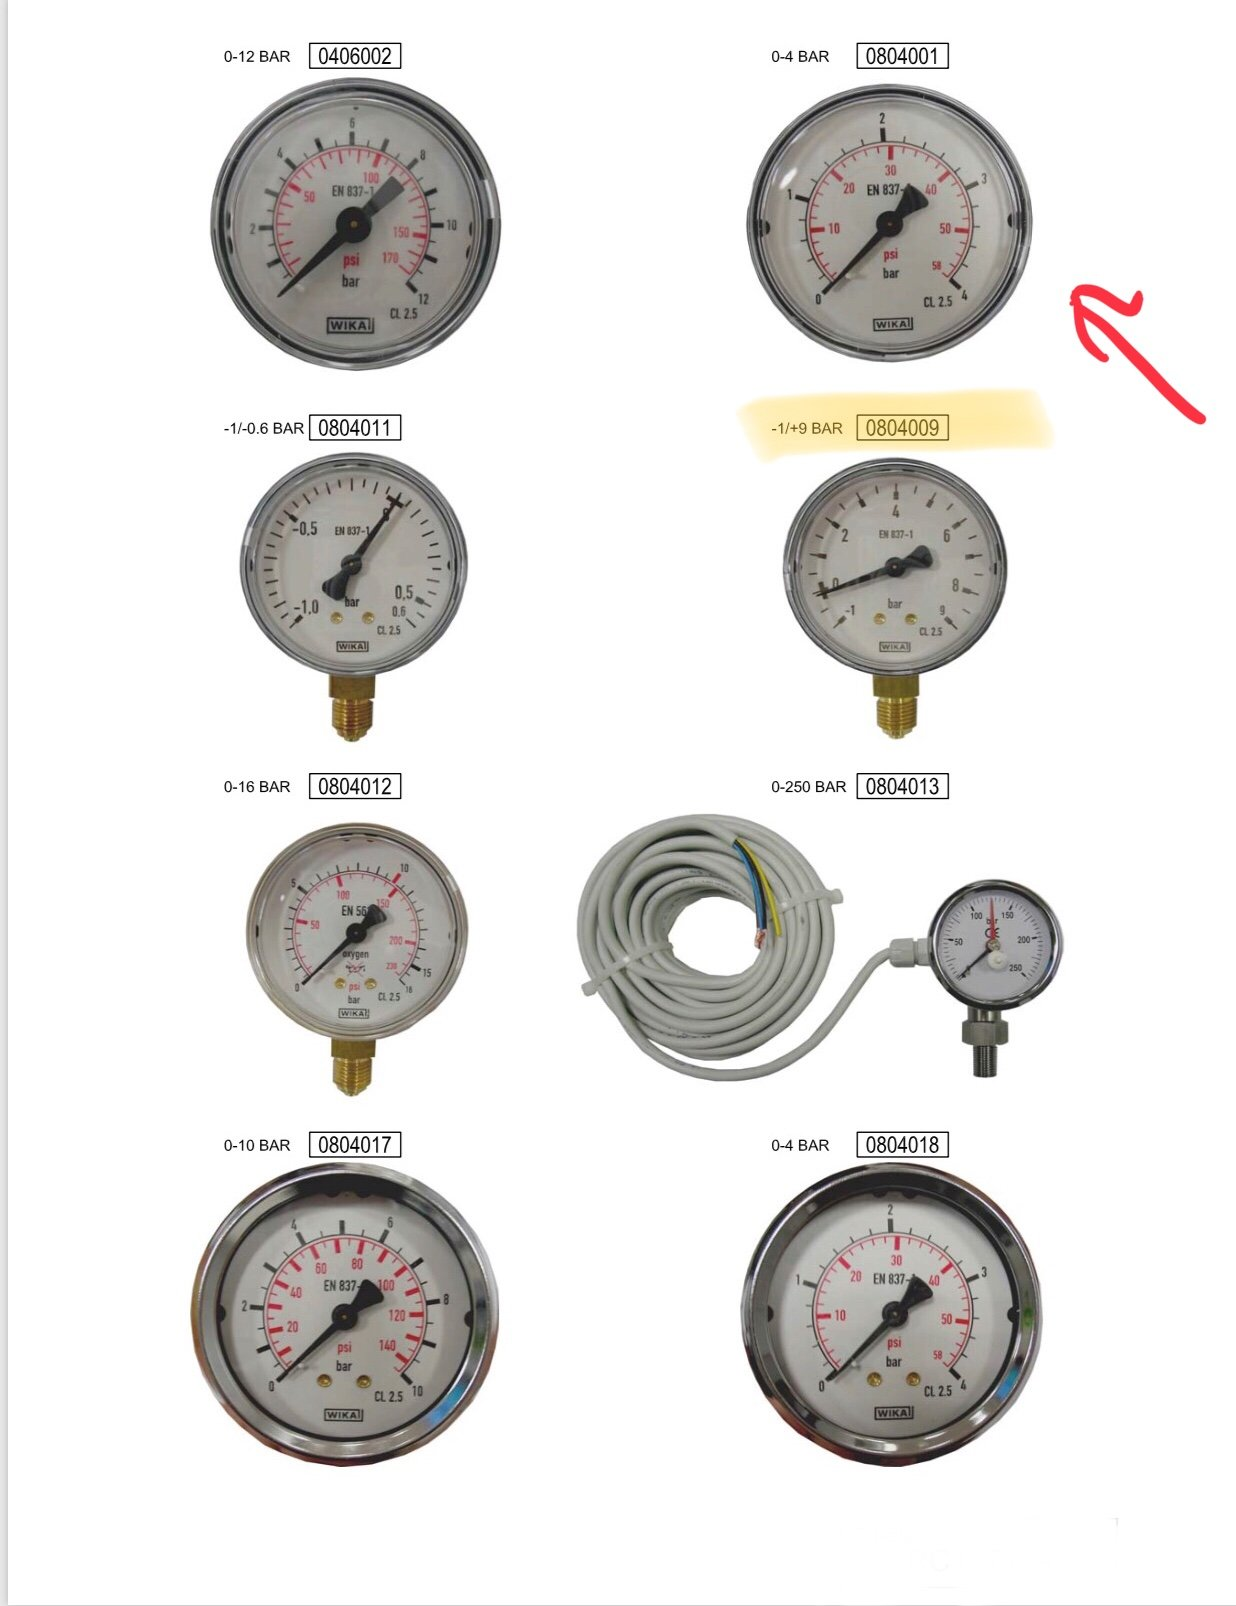 1/4'' Filter pressure gauge for Firbimatic 0804009, Realstar, and Union dry cleaning machines